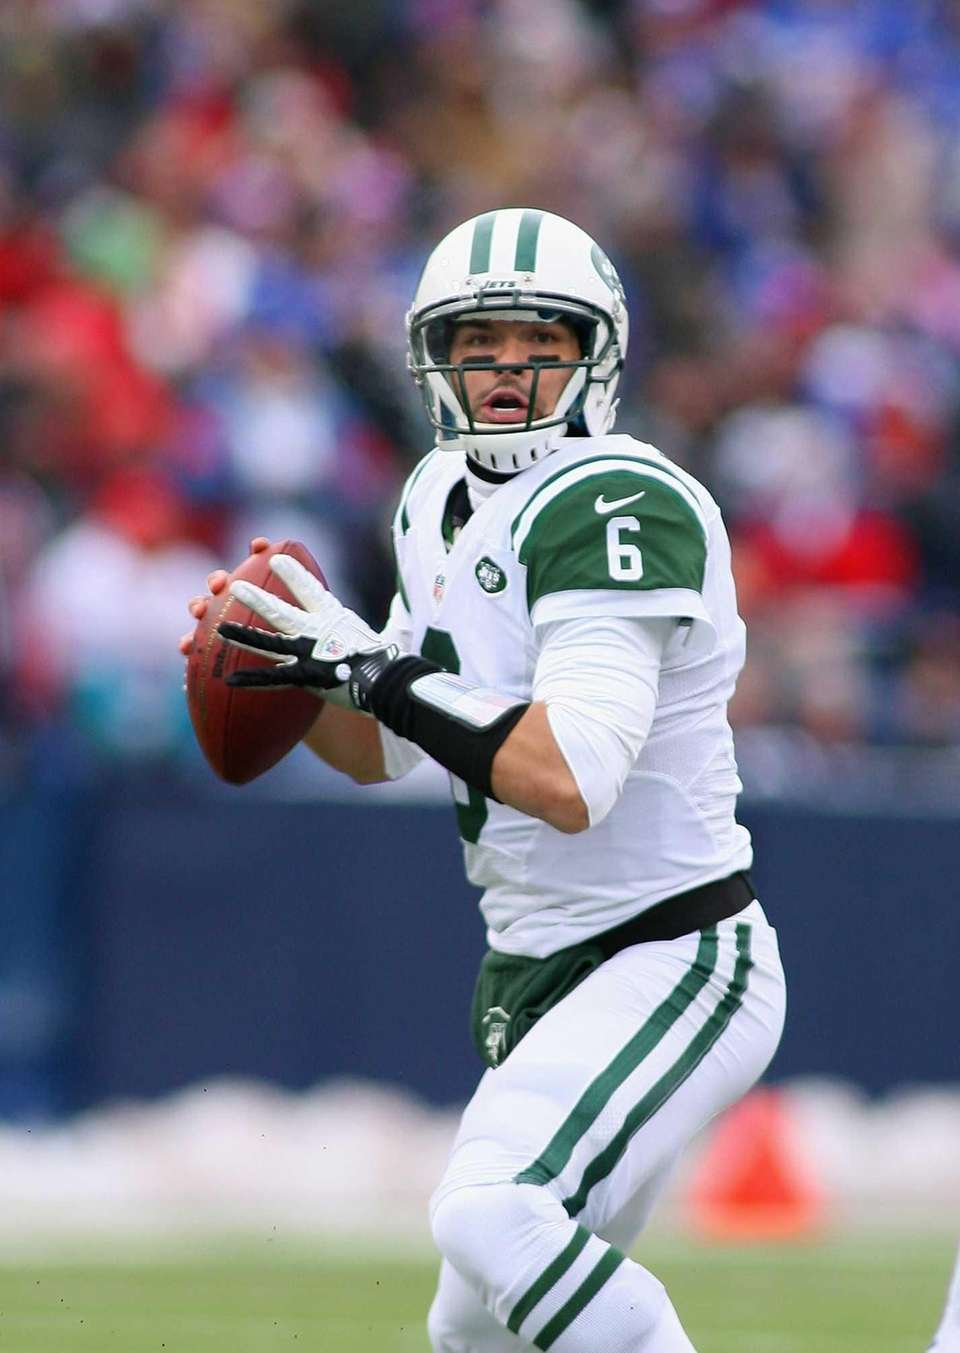 Mark Sanchez of the Jets looks to pass